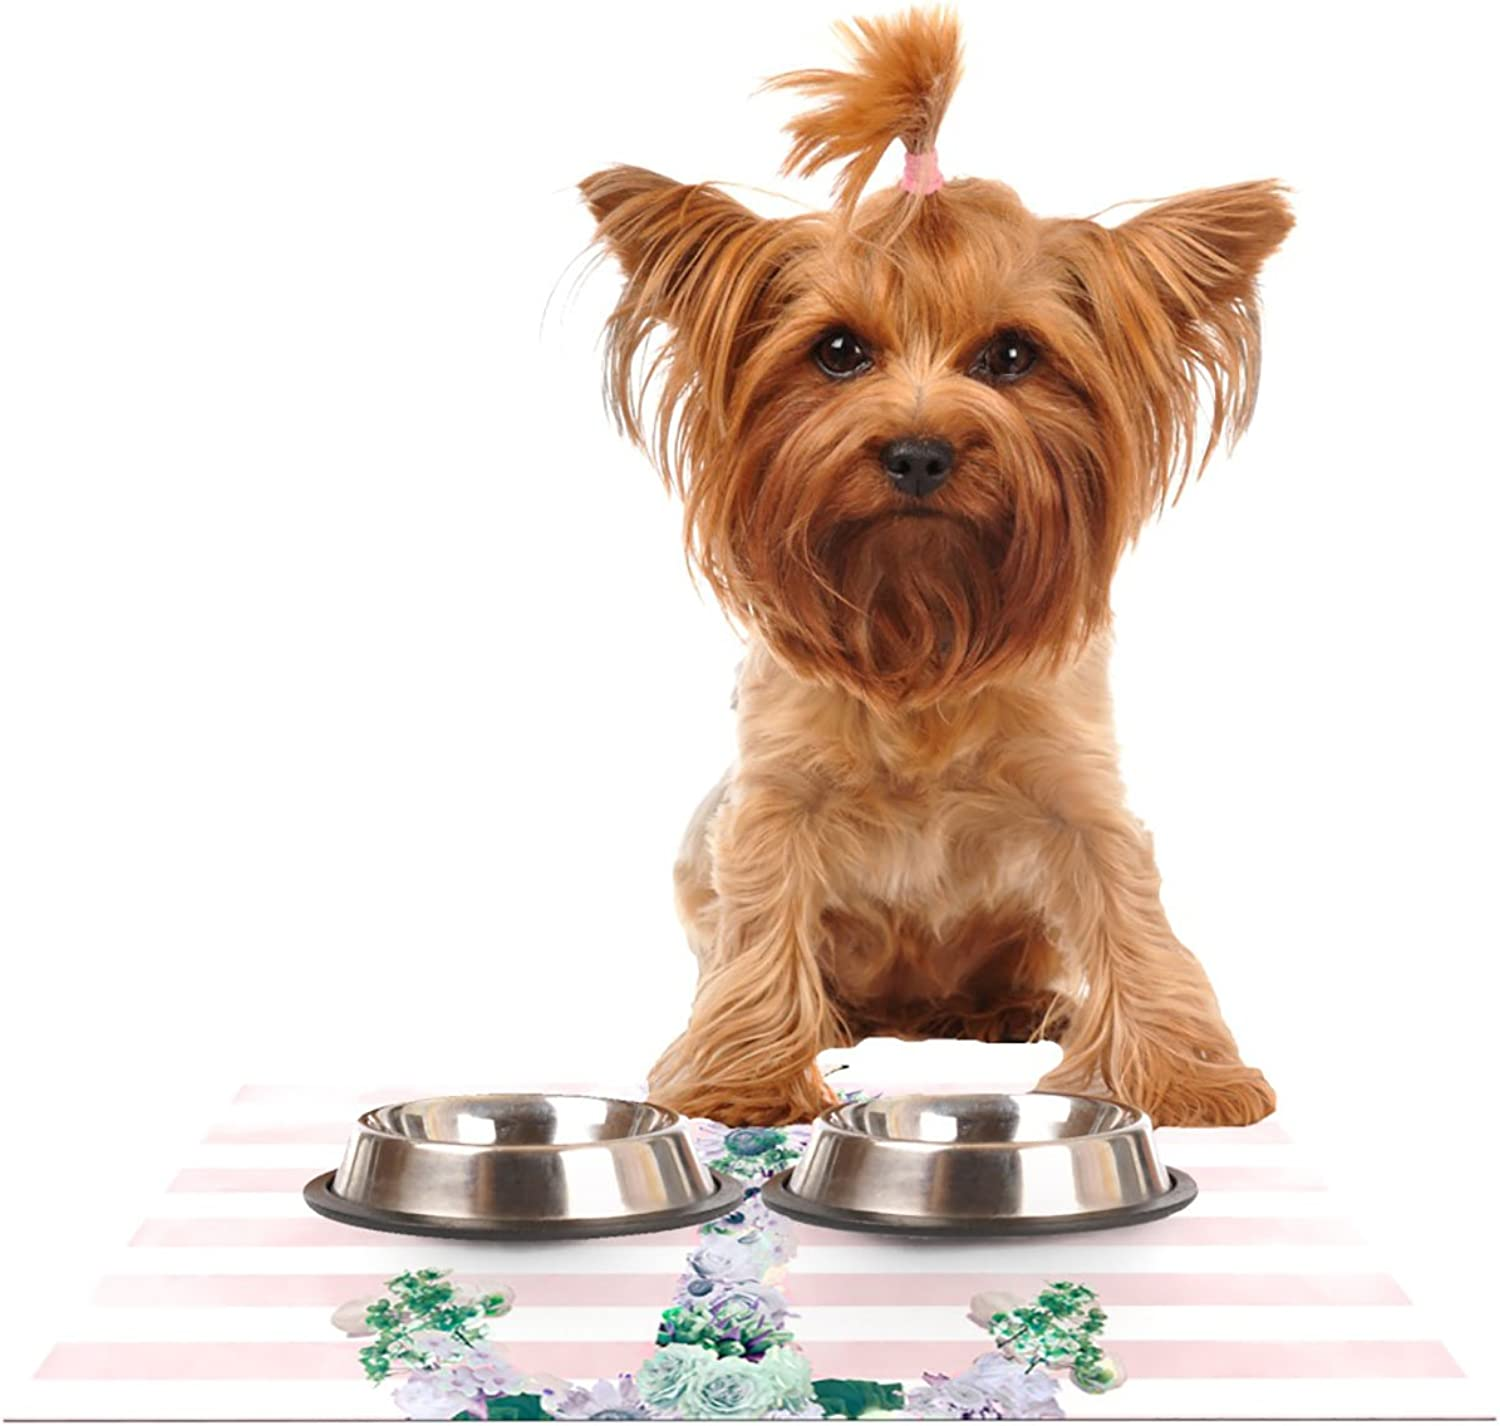 Kess InHouse Nika Martinez Floral Anchor  Pet Bowl Placemat for Dog and Cat Feeding Mat, 24 by 15Inch, Pink Stripes